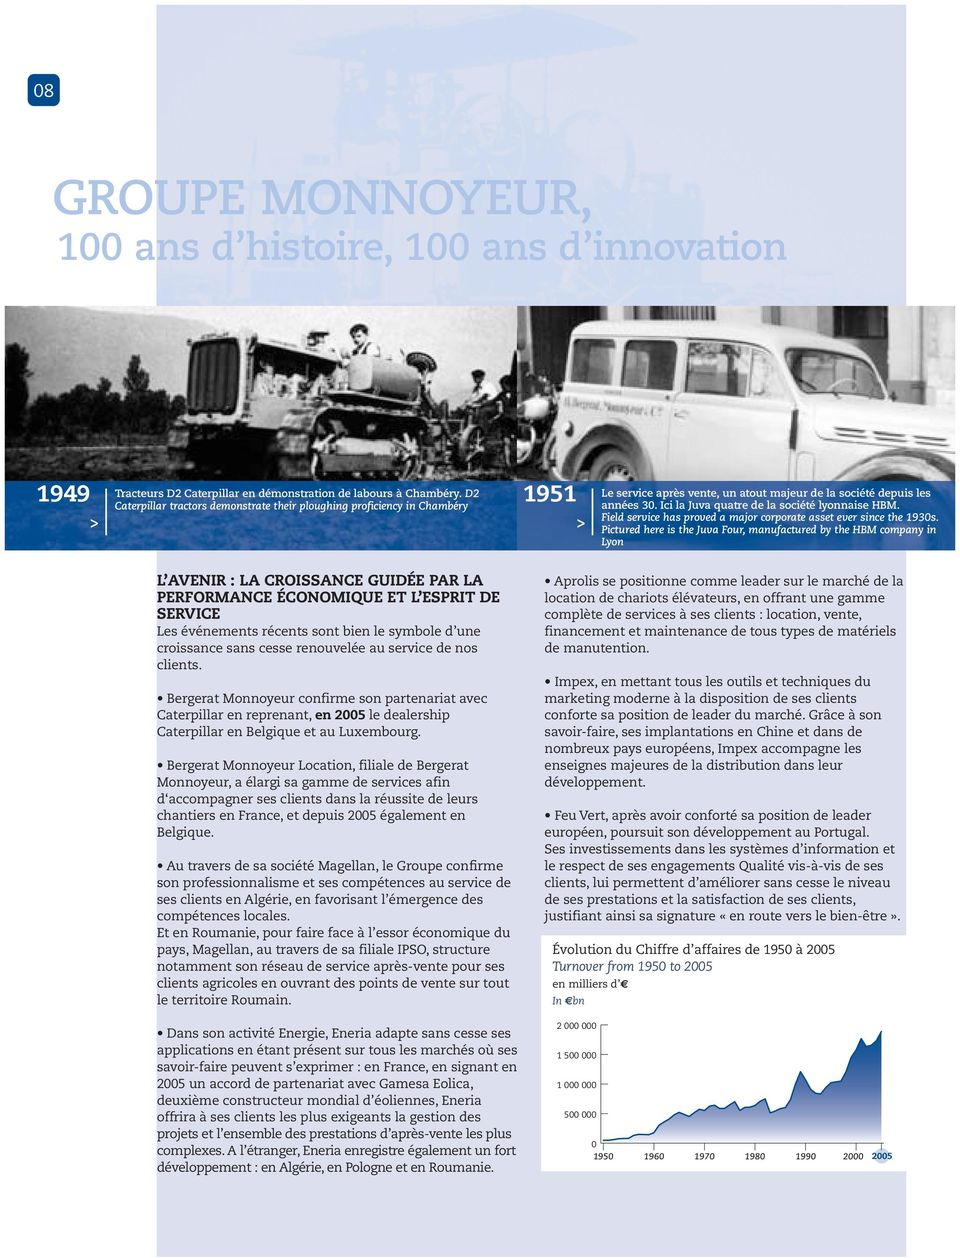 Ici la Juva quatre de la société lyonnaise HBM. Field service has proved a major corporate asset ever since the 1930s.